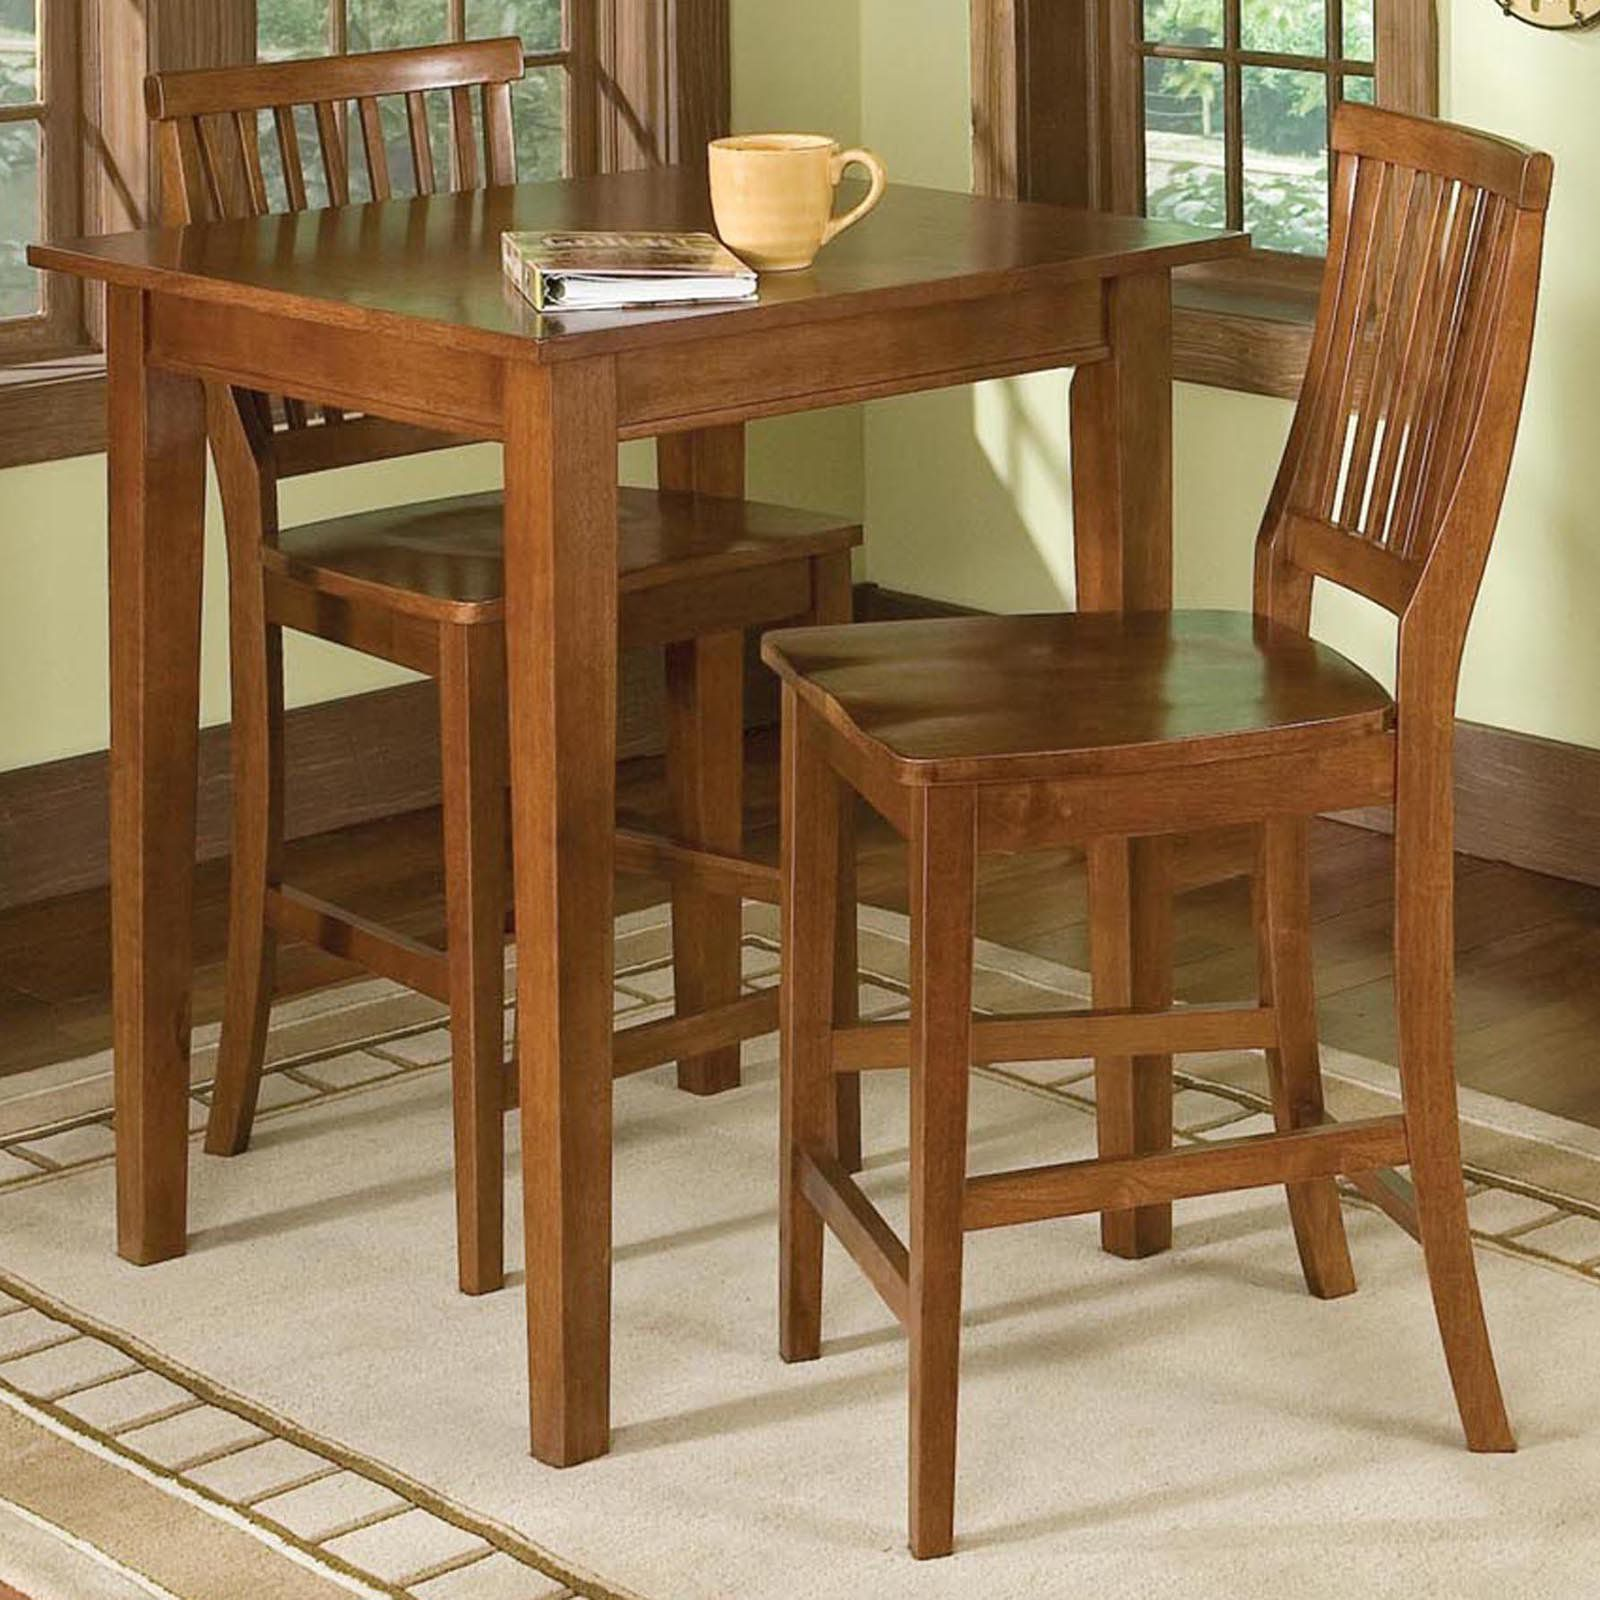 Interesting bistro table and chairs for home furniture ideas with indoor bistro table and chairs